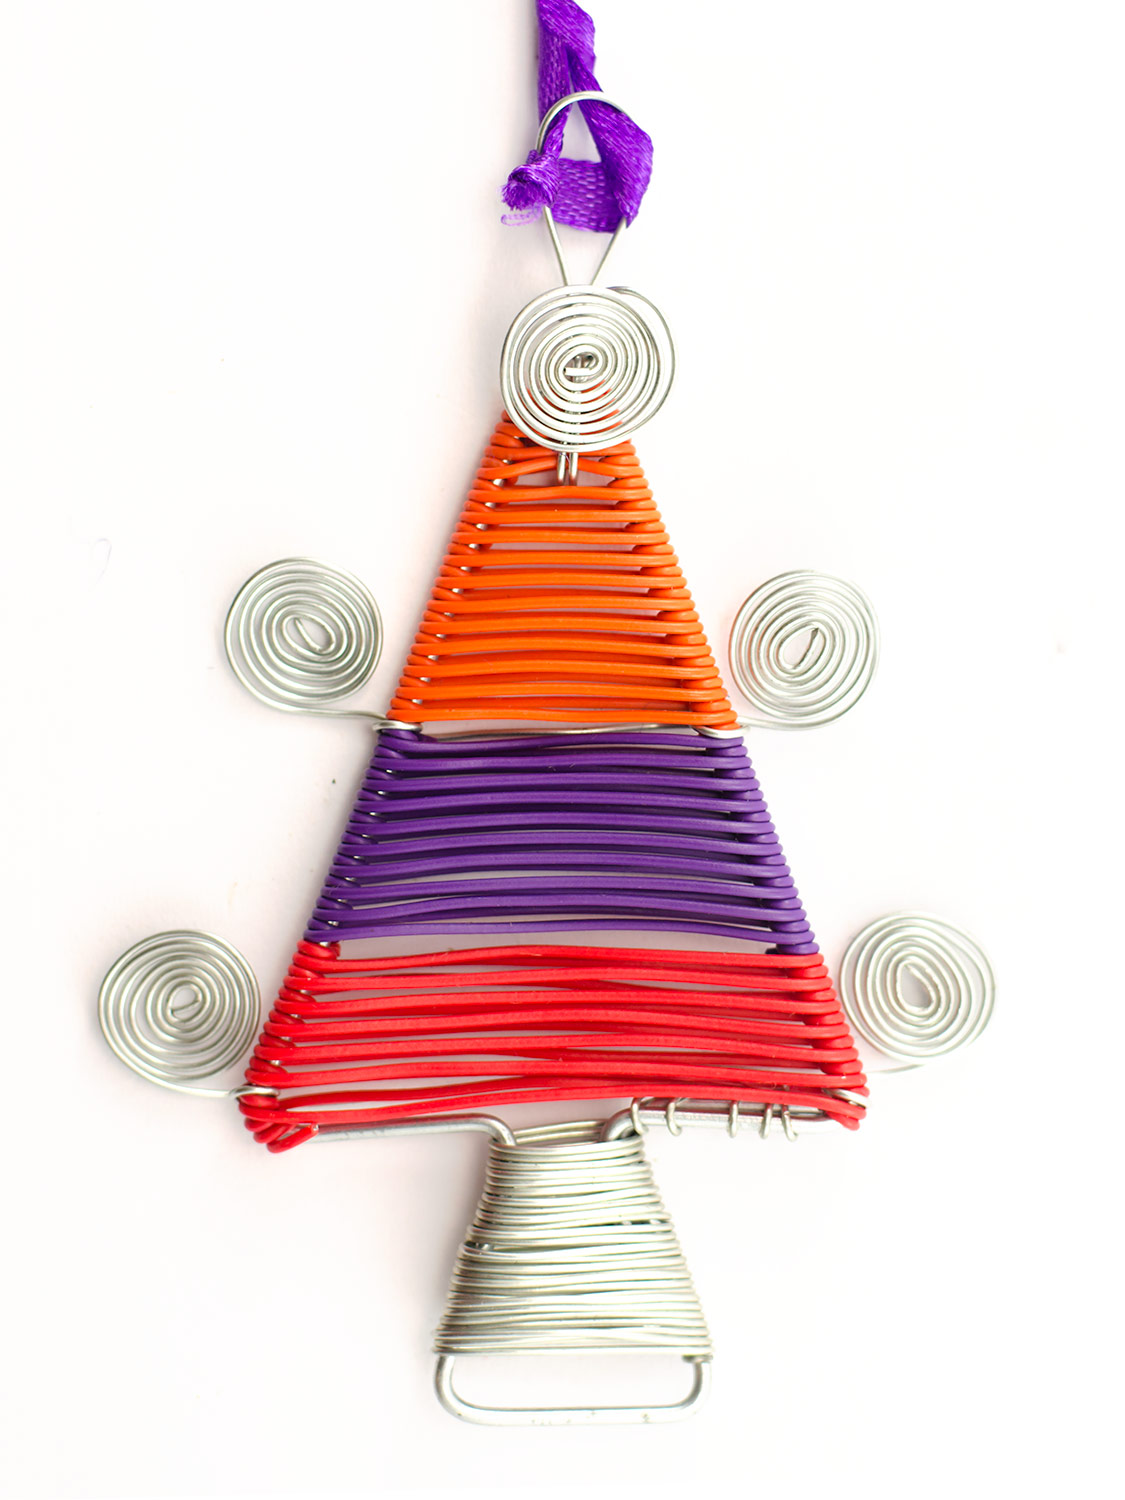 Scooby wire Christmas Tree